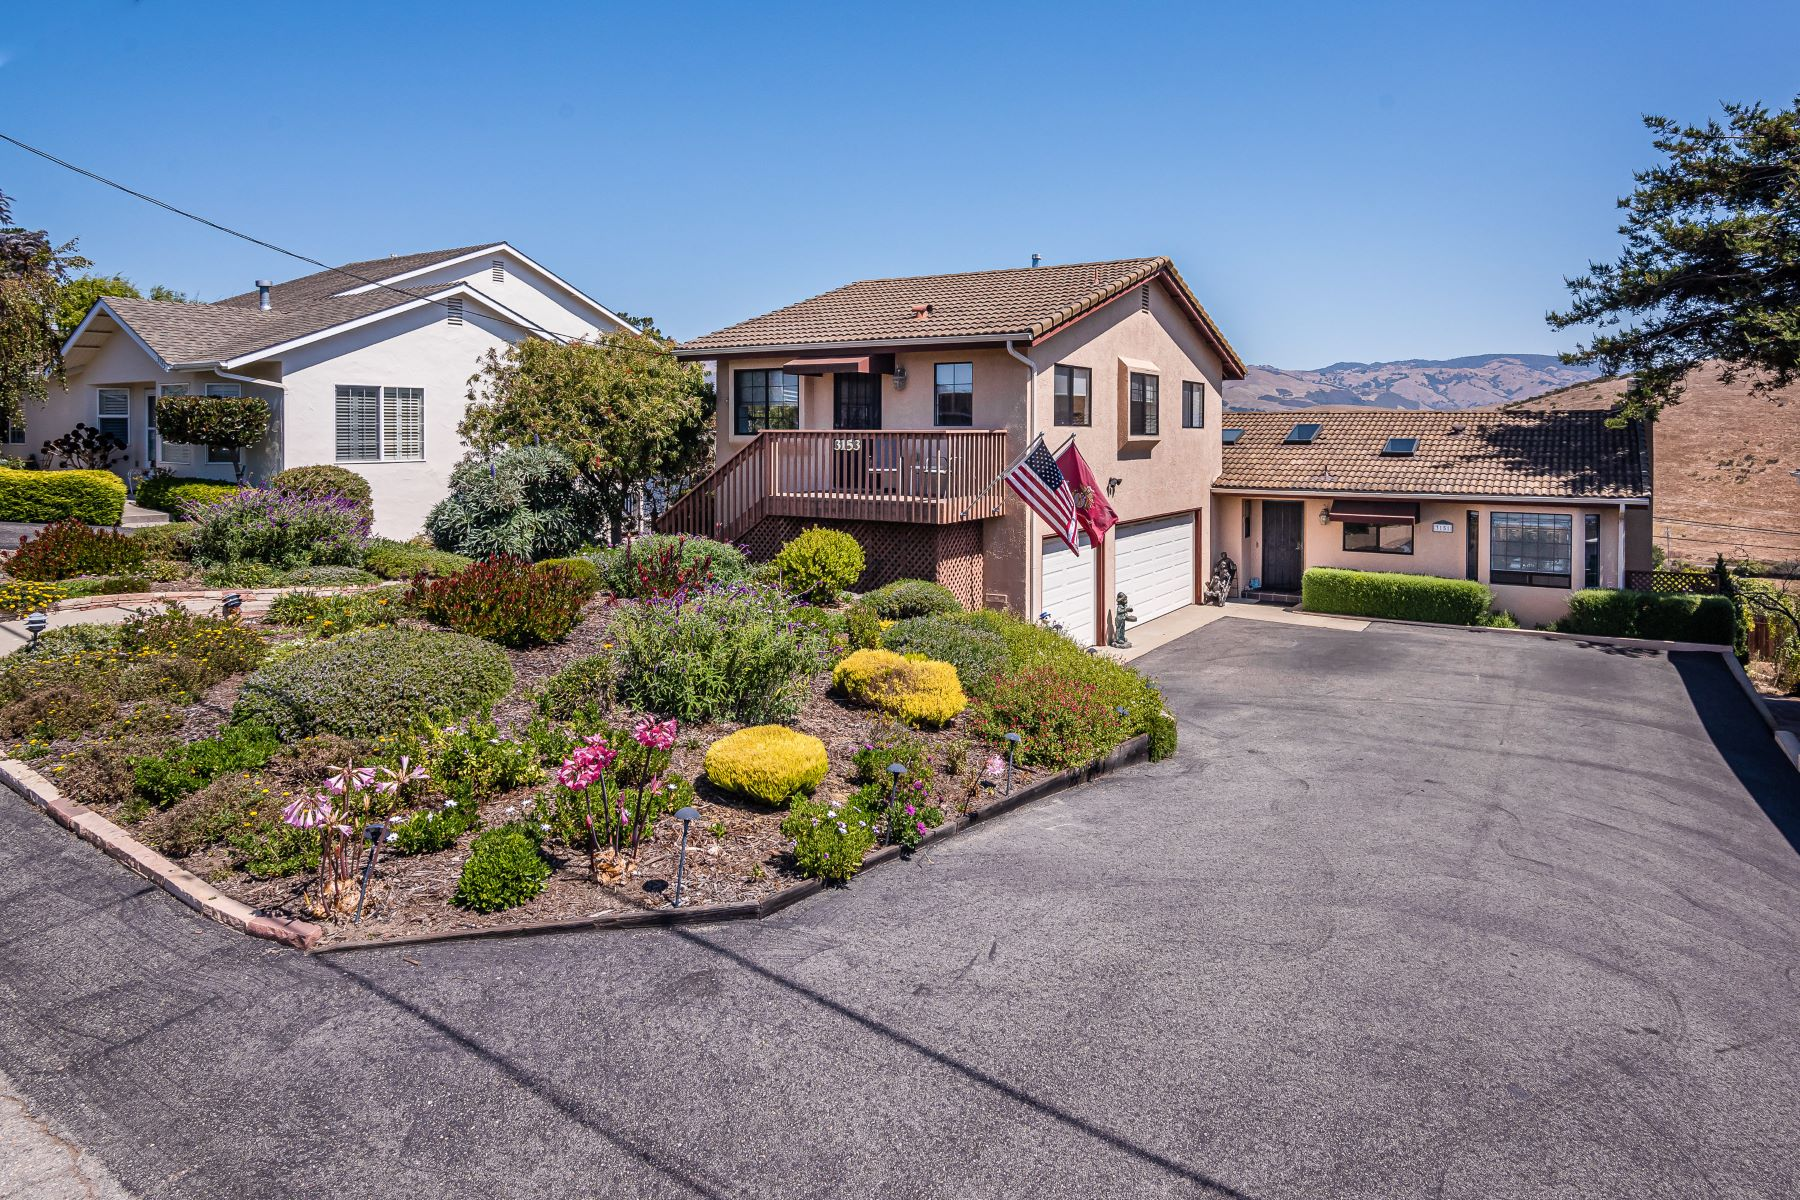 Multi-Family Homes for Sale at Lodge Hill Home with Apartment 3151-3153 Wood Drive Cambria, California 93428 United States